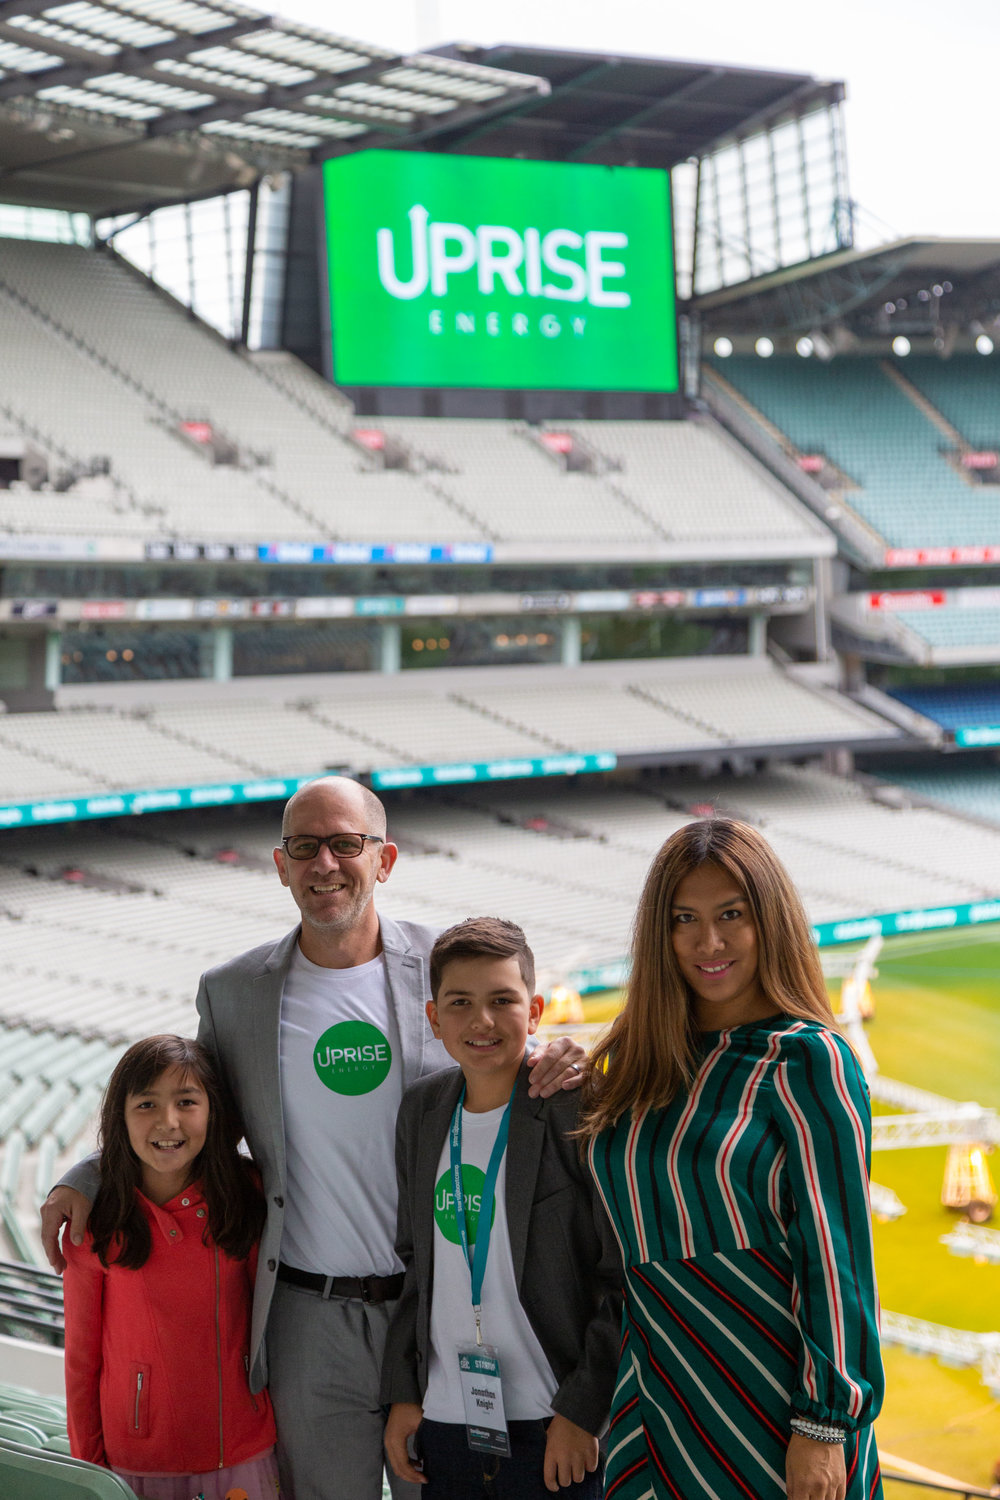 Representing Uprise in Australia, L to R: Kalani, Jonathan, Keone and Rosa Knight